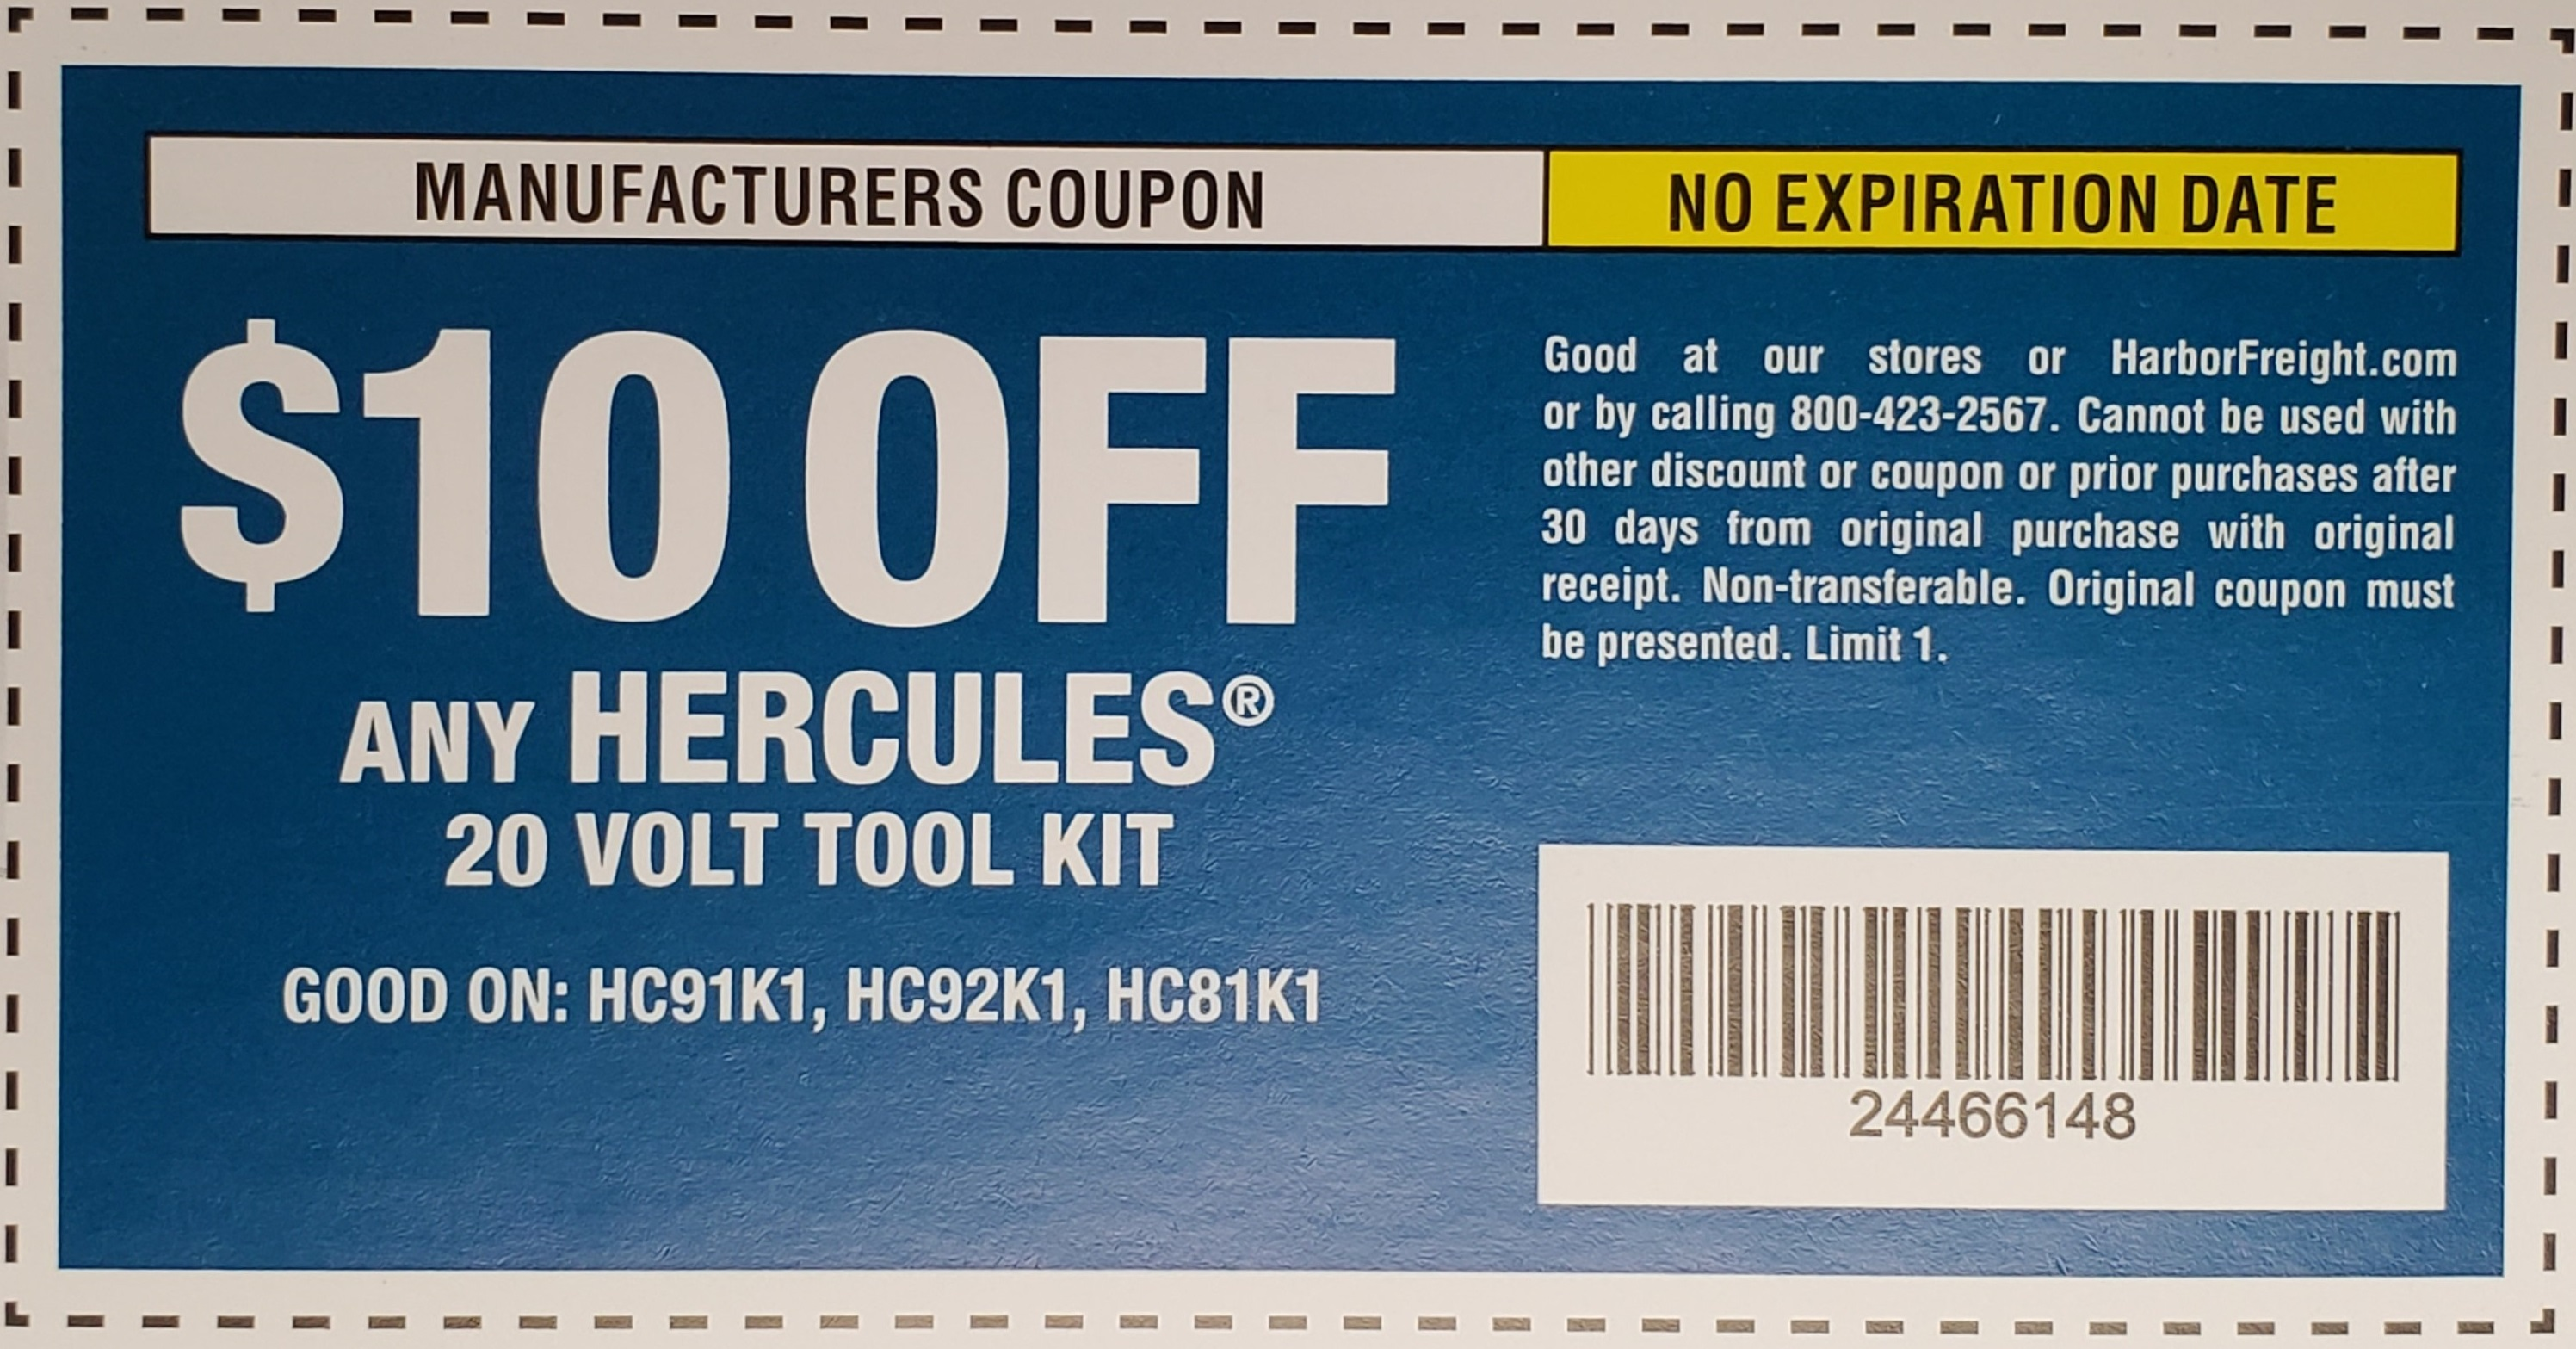 Harbor Freight HERCULES 20V TOOL KIT coupon